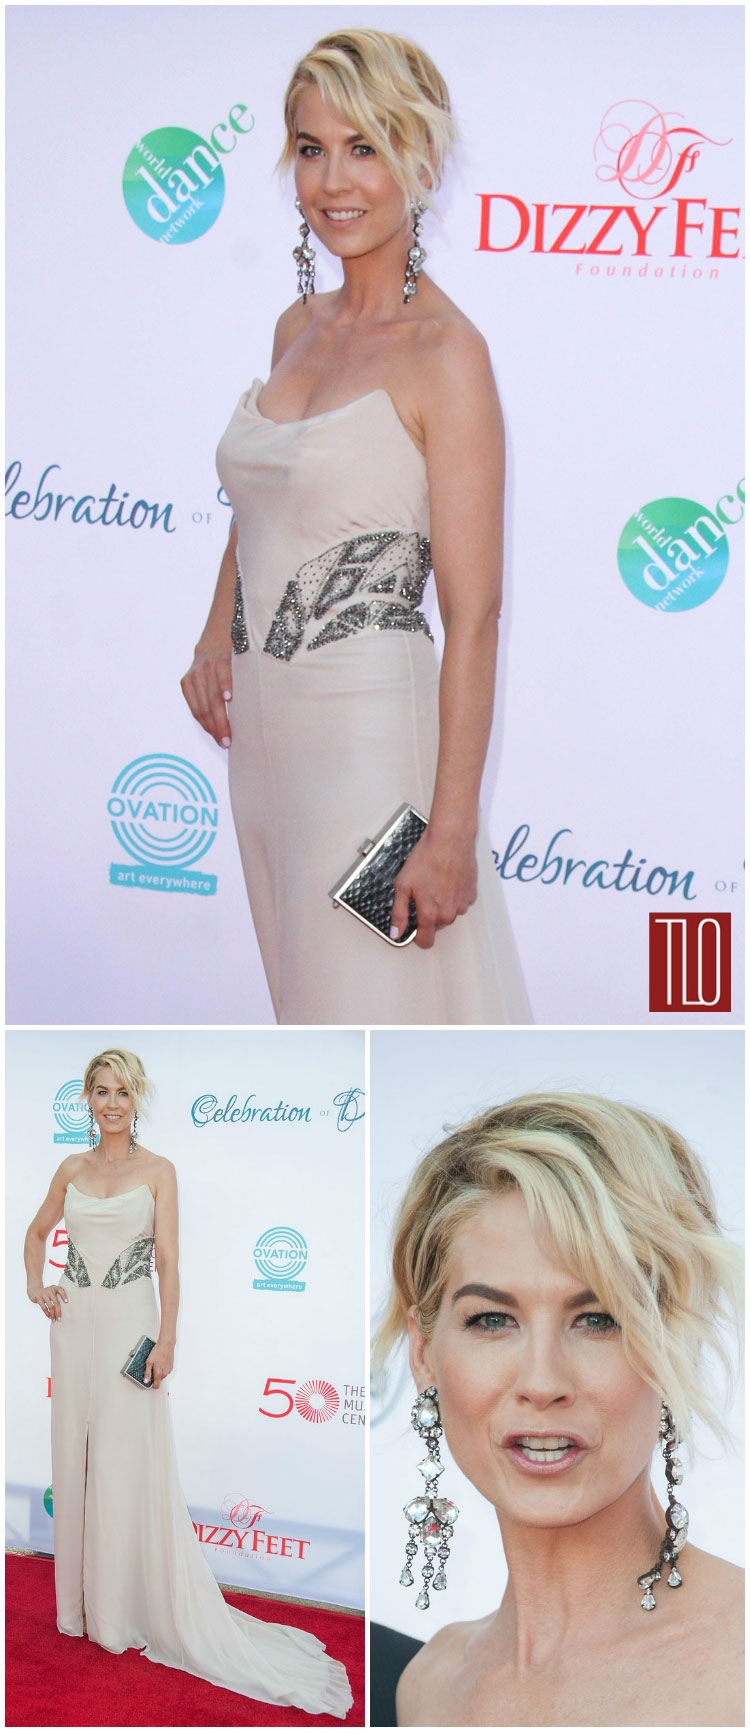 Jenna-Elfman-Theia-2014-Celebration-Dance-Gala-Red-Carpet-Tom-Lorenzo-Site-TLO (1)